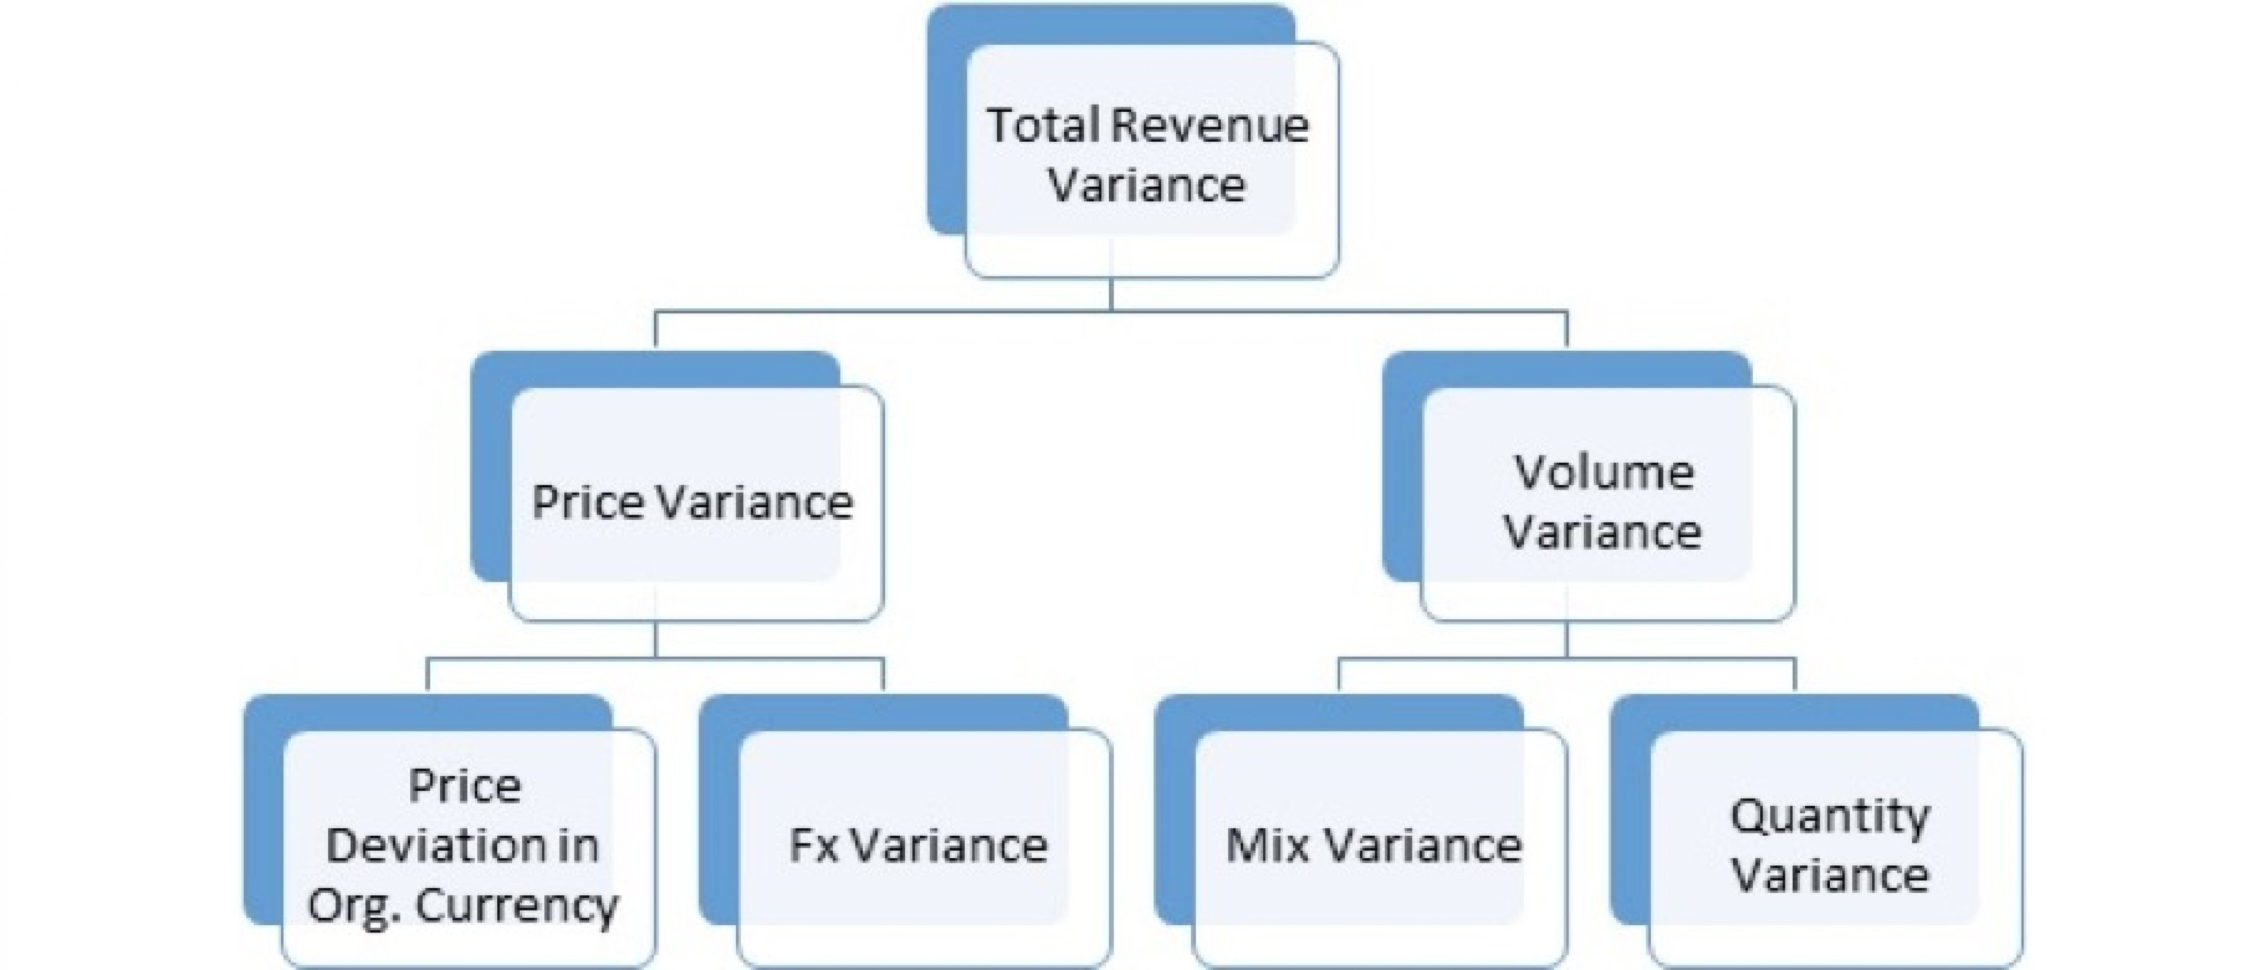 Variance Analysis Excel Spreadsheet For Variance Analysis Template  Eloquens